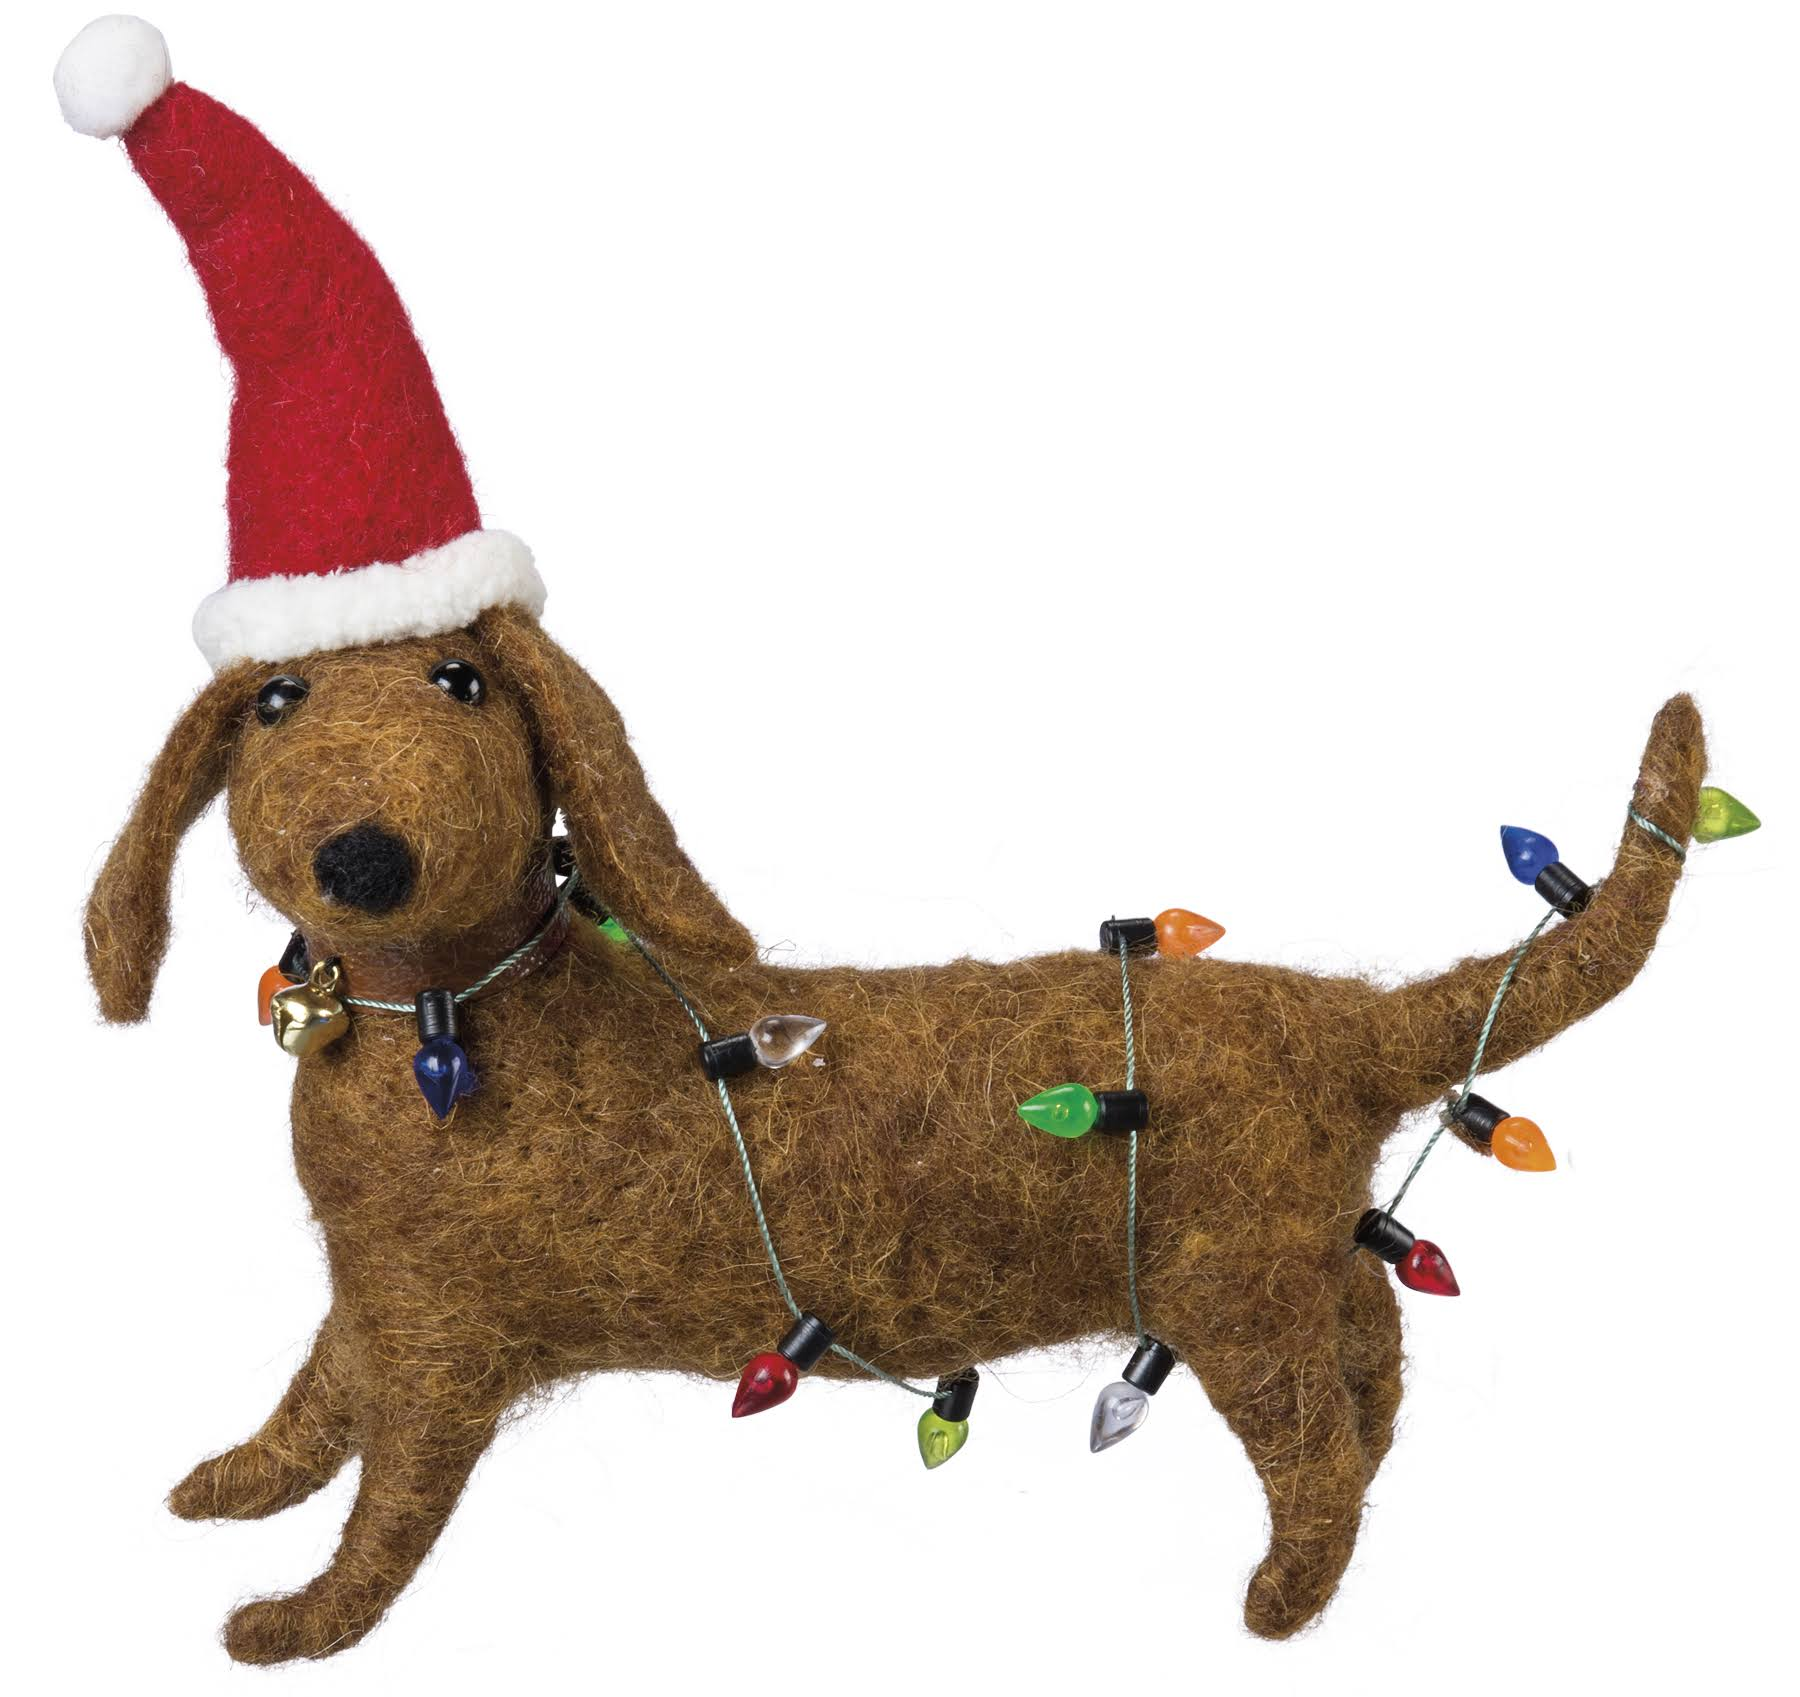 Dachshund Wearing Christmas Hat & Lights Figurine 6 inch from Primitives by Kathy